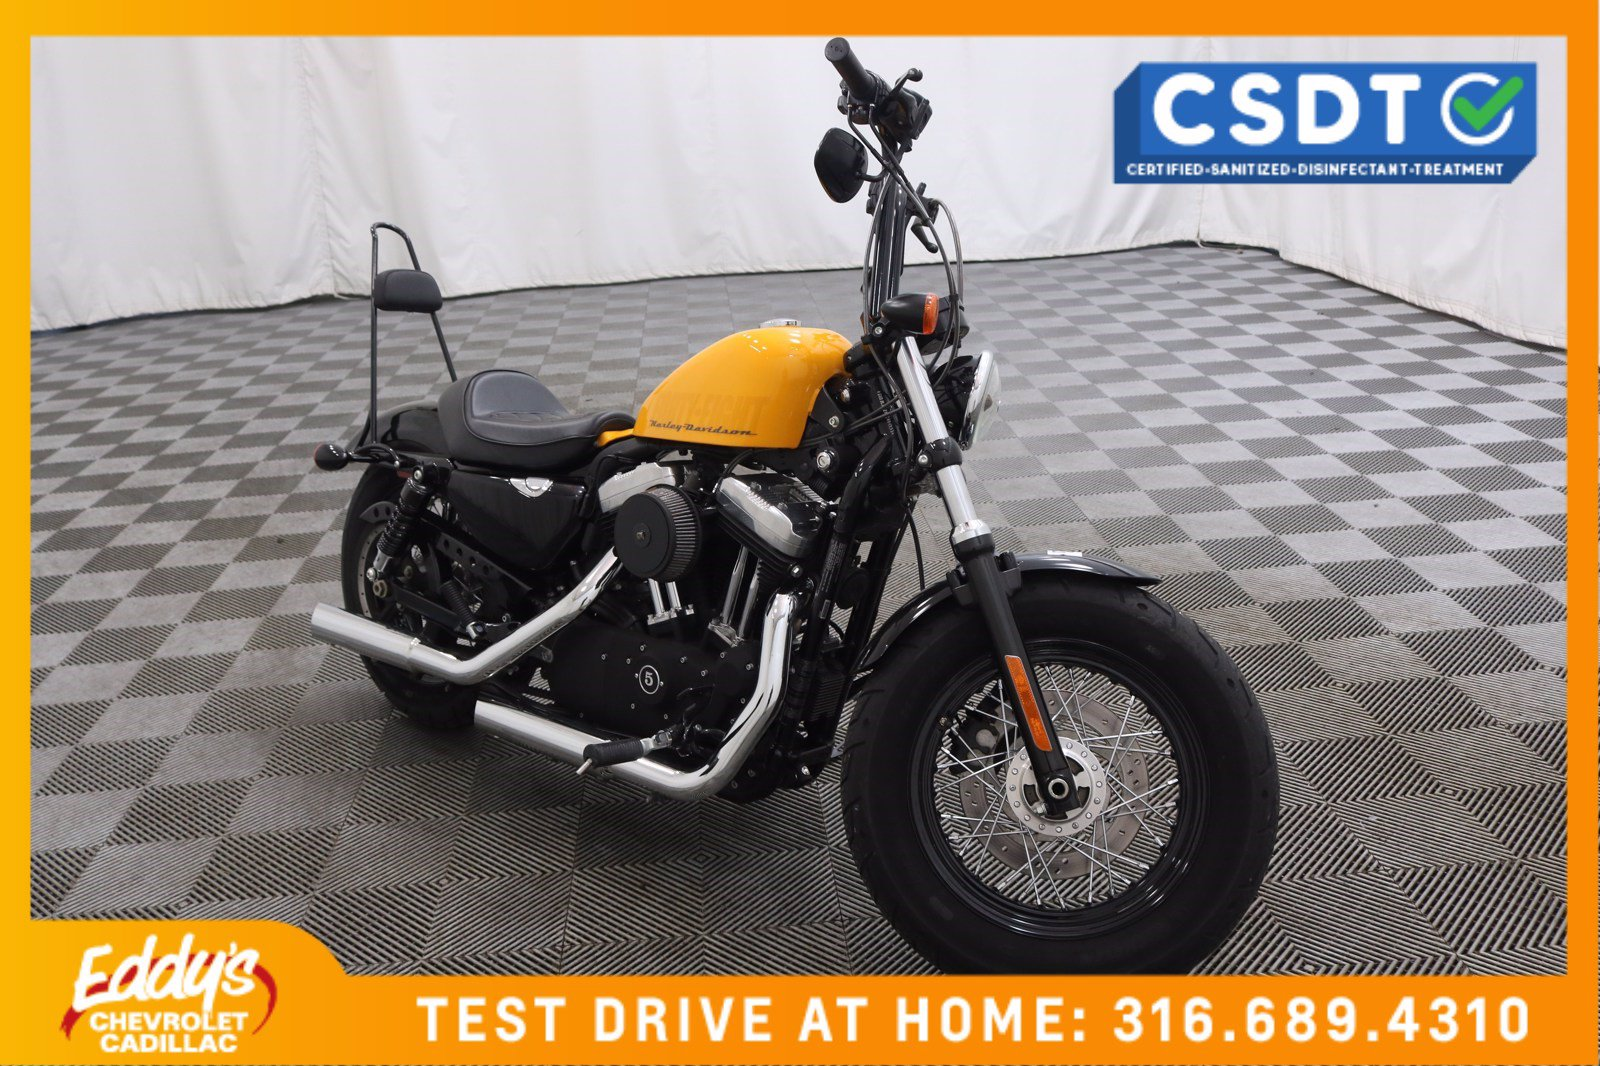 Pre-Owned 2012 HARLEY DAVIDSON XL1200 Forty-Eight